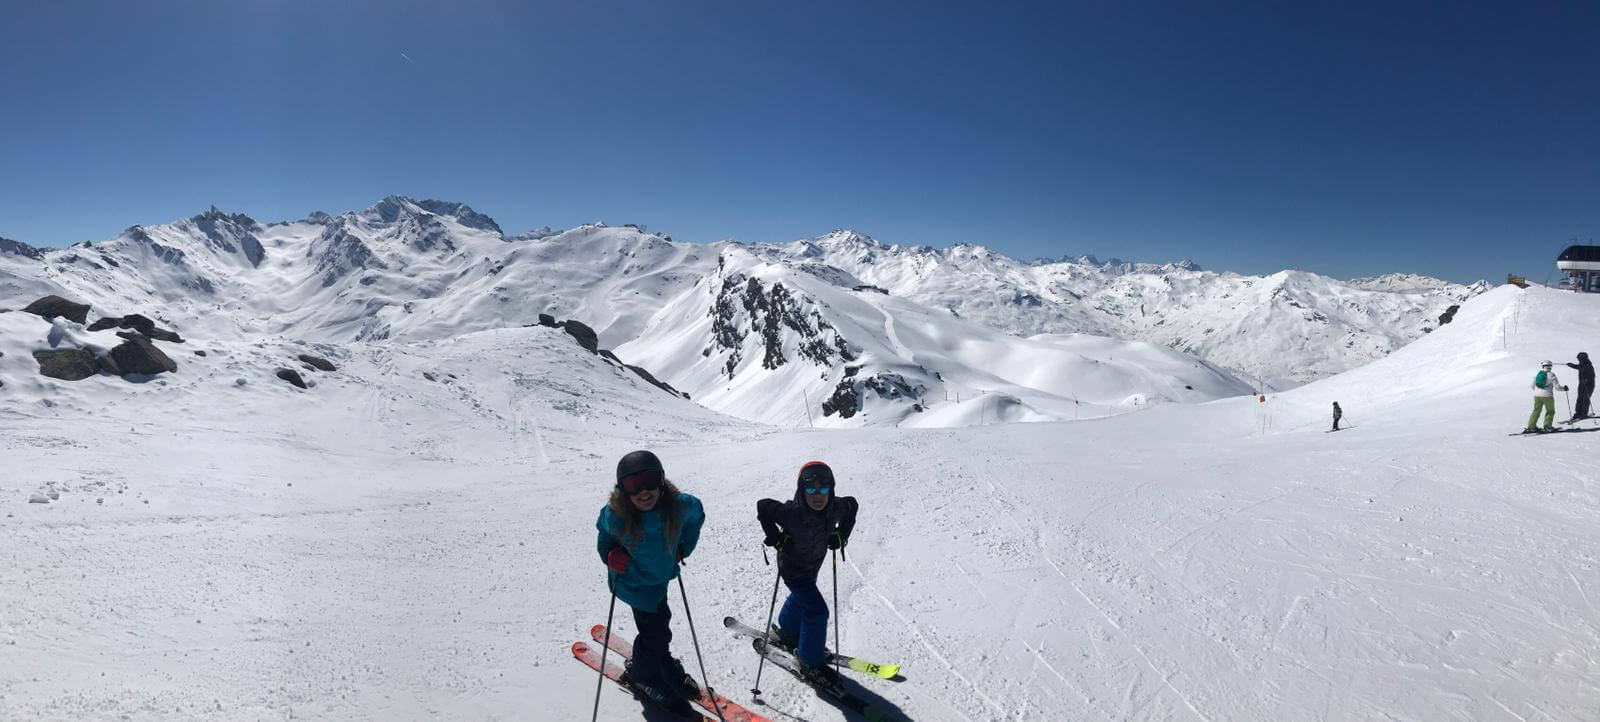 two skiers on slope after yoga stretches